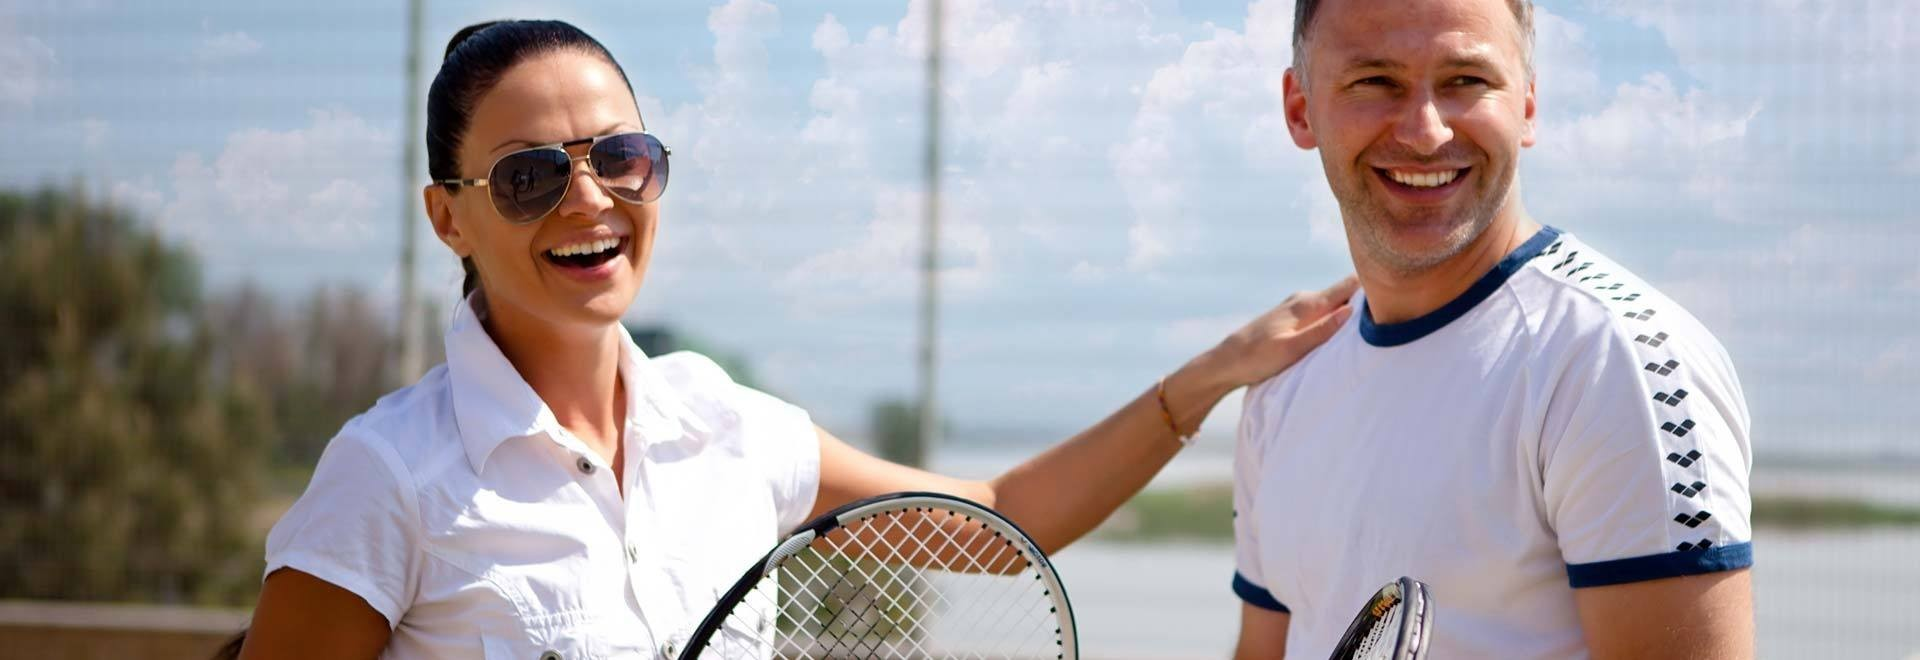 Couple Tennis Vacations And Holidays - Book tennis resorts and camps for your next Couple tennis vacation